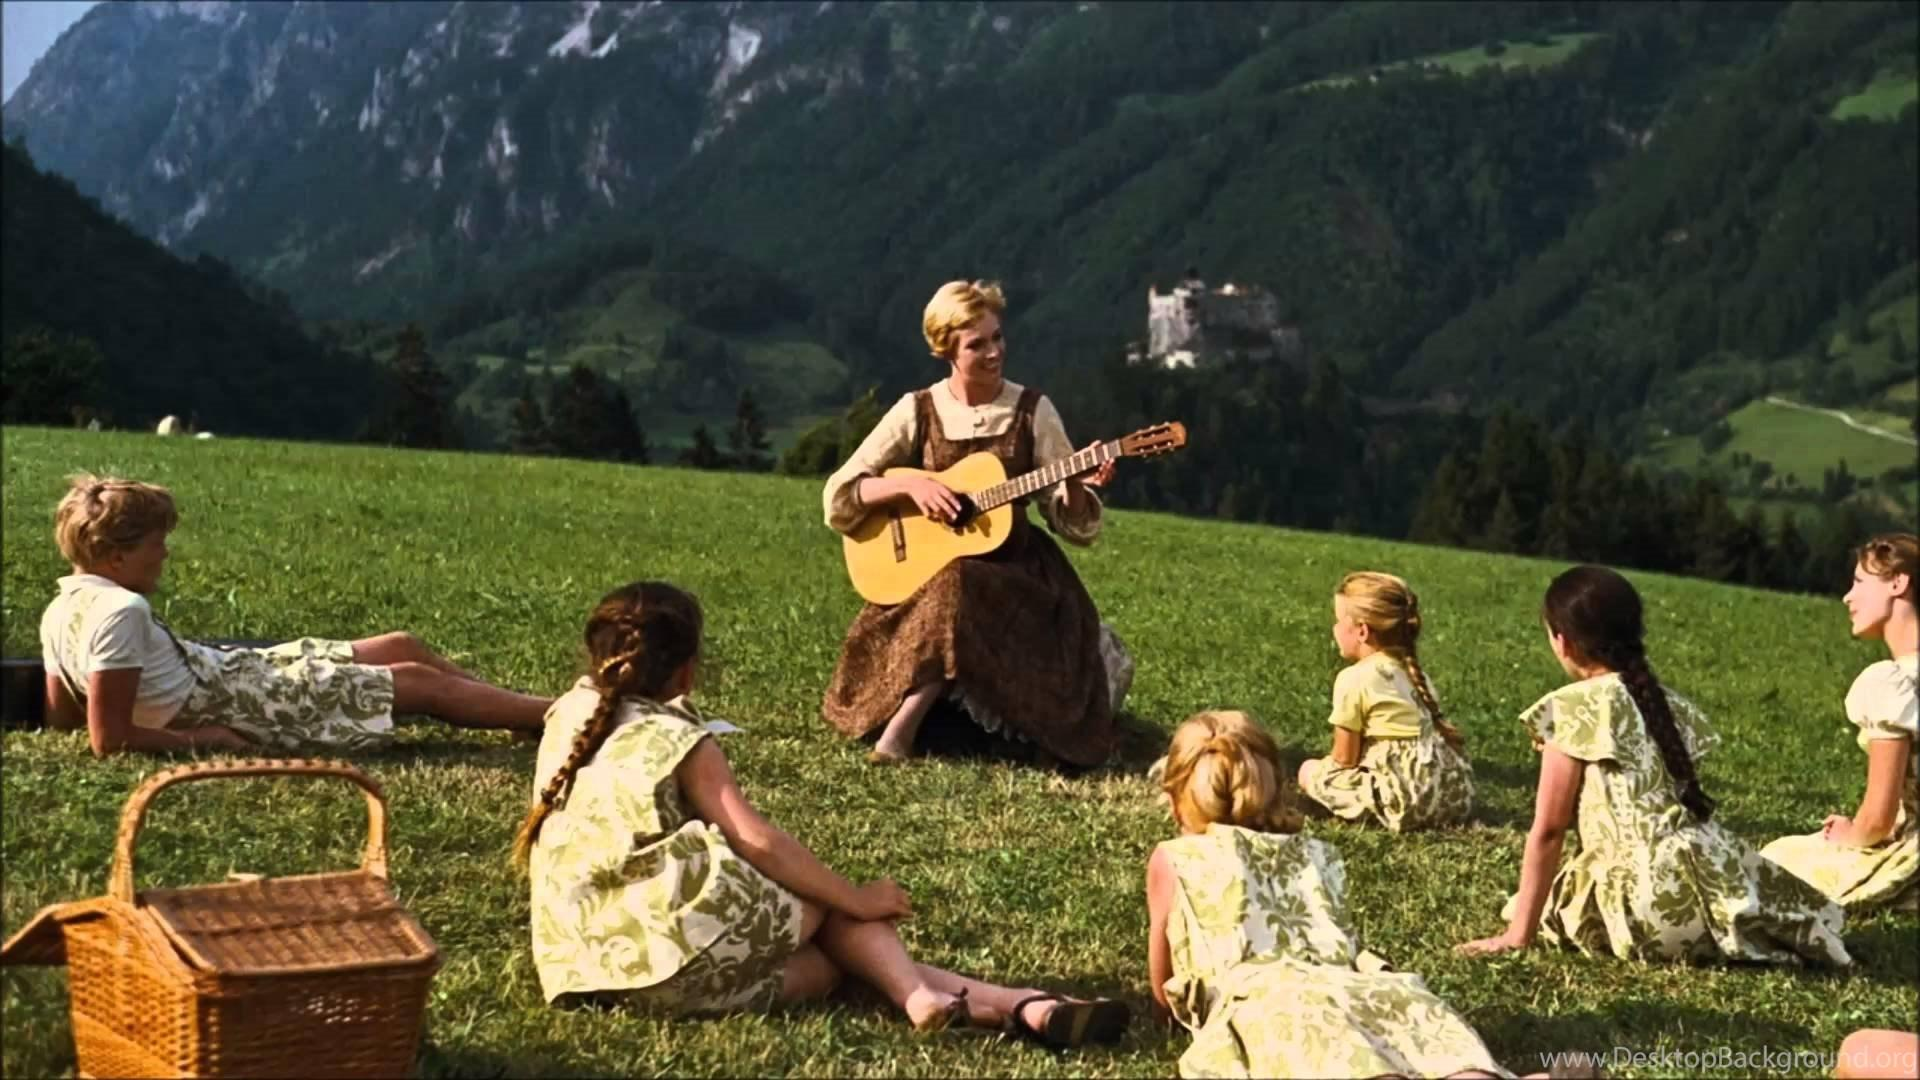 The Sound Of Music Wallpapers 6